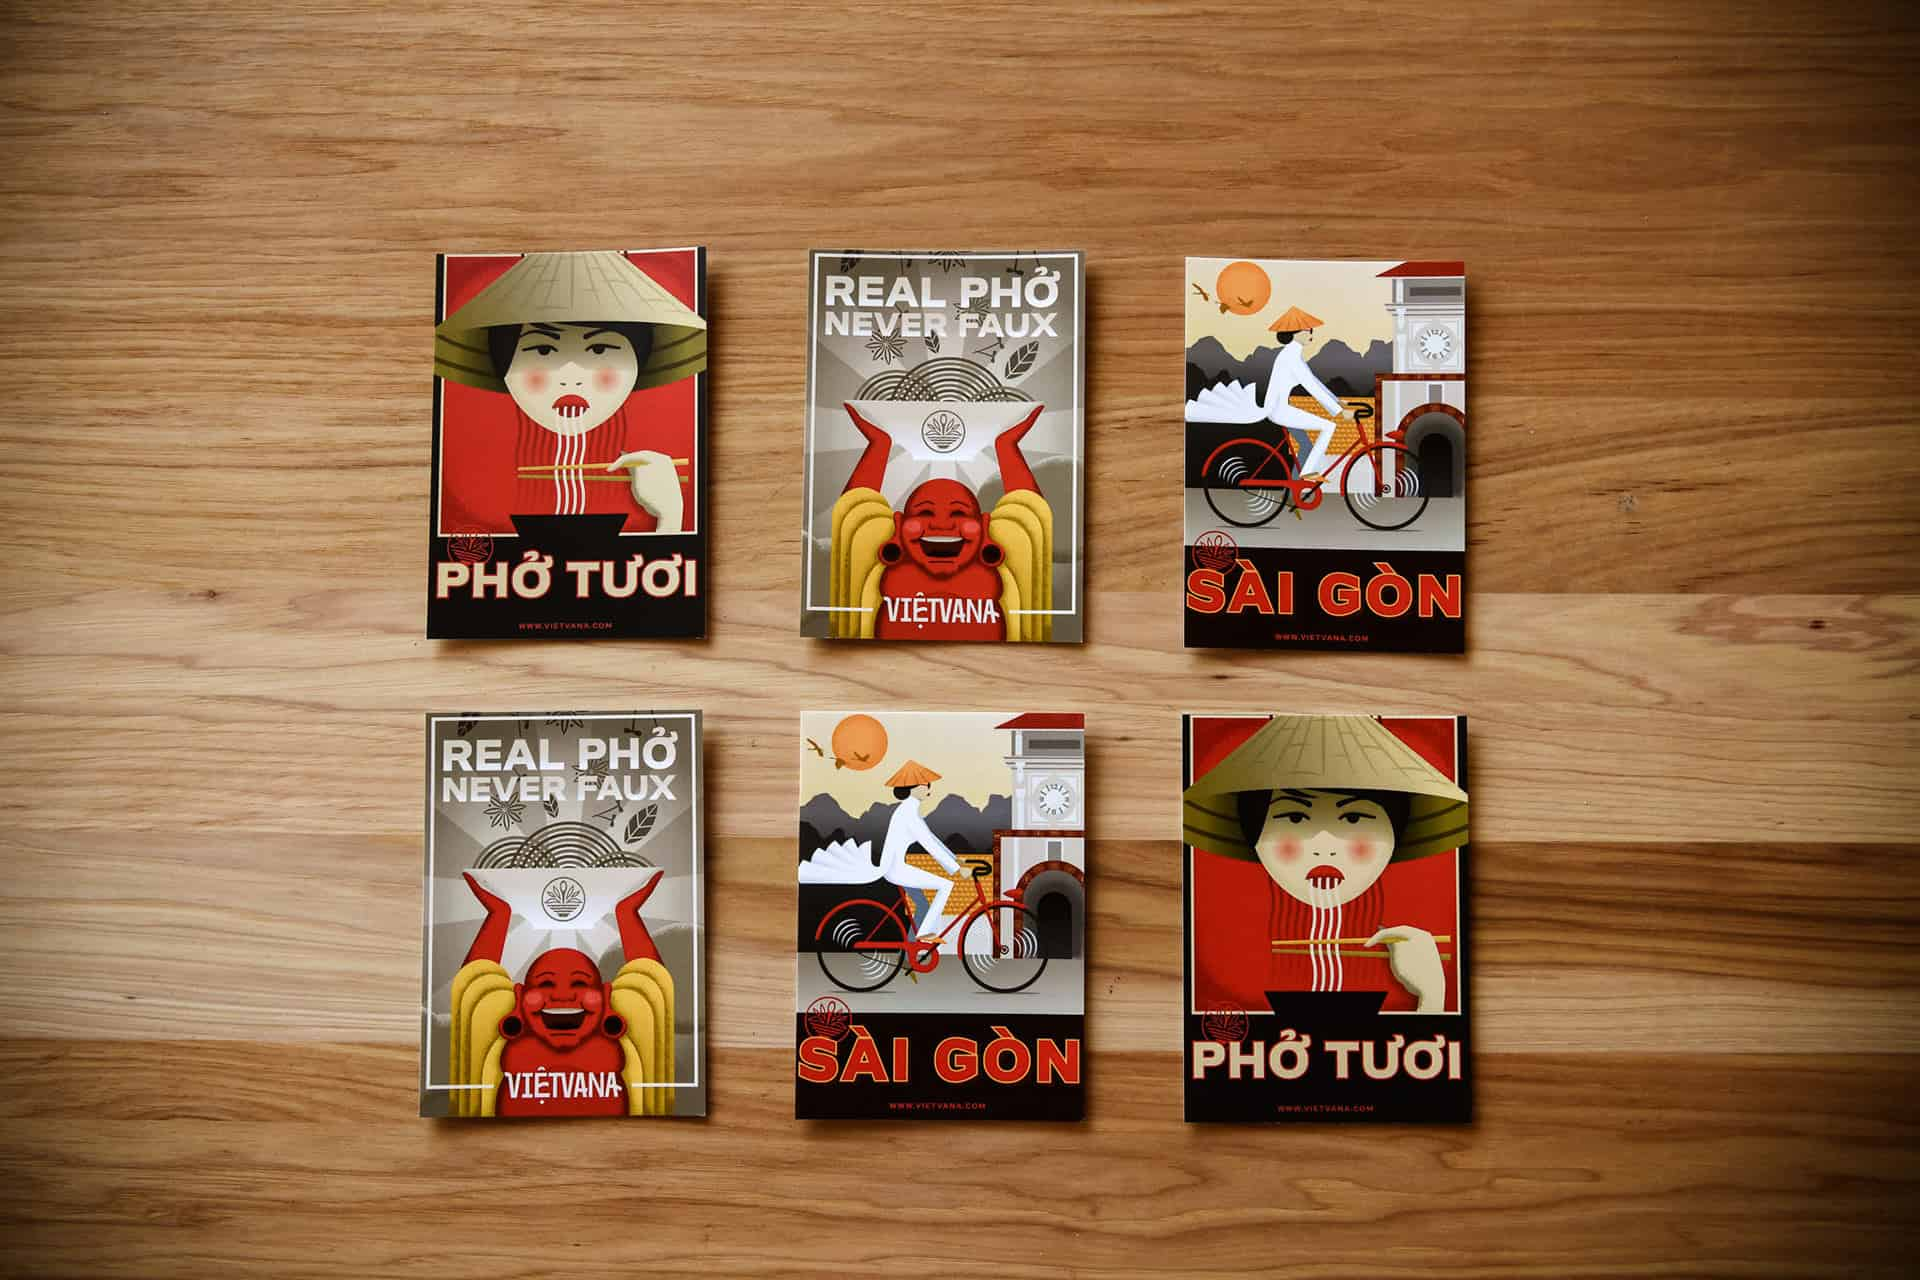 Vietvana - Vietnamese full service restaurant branding - custom illustrations